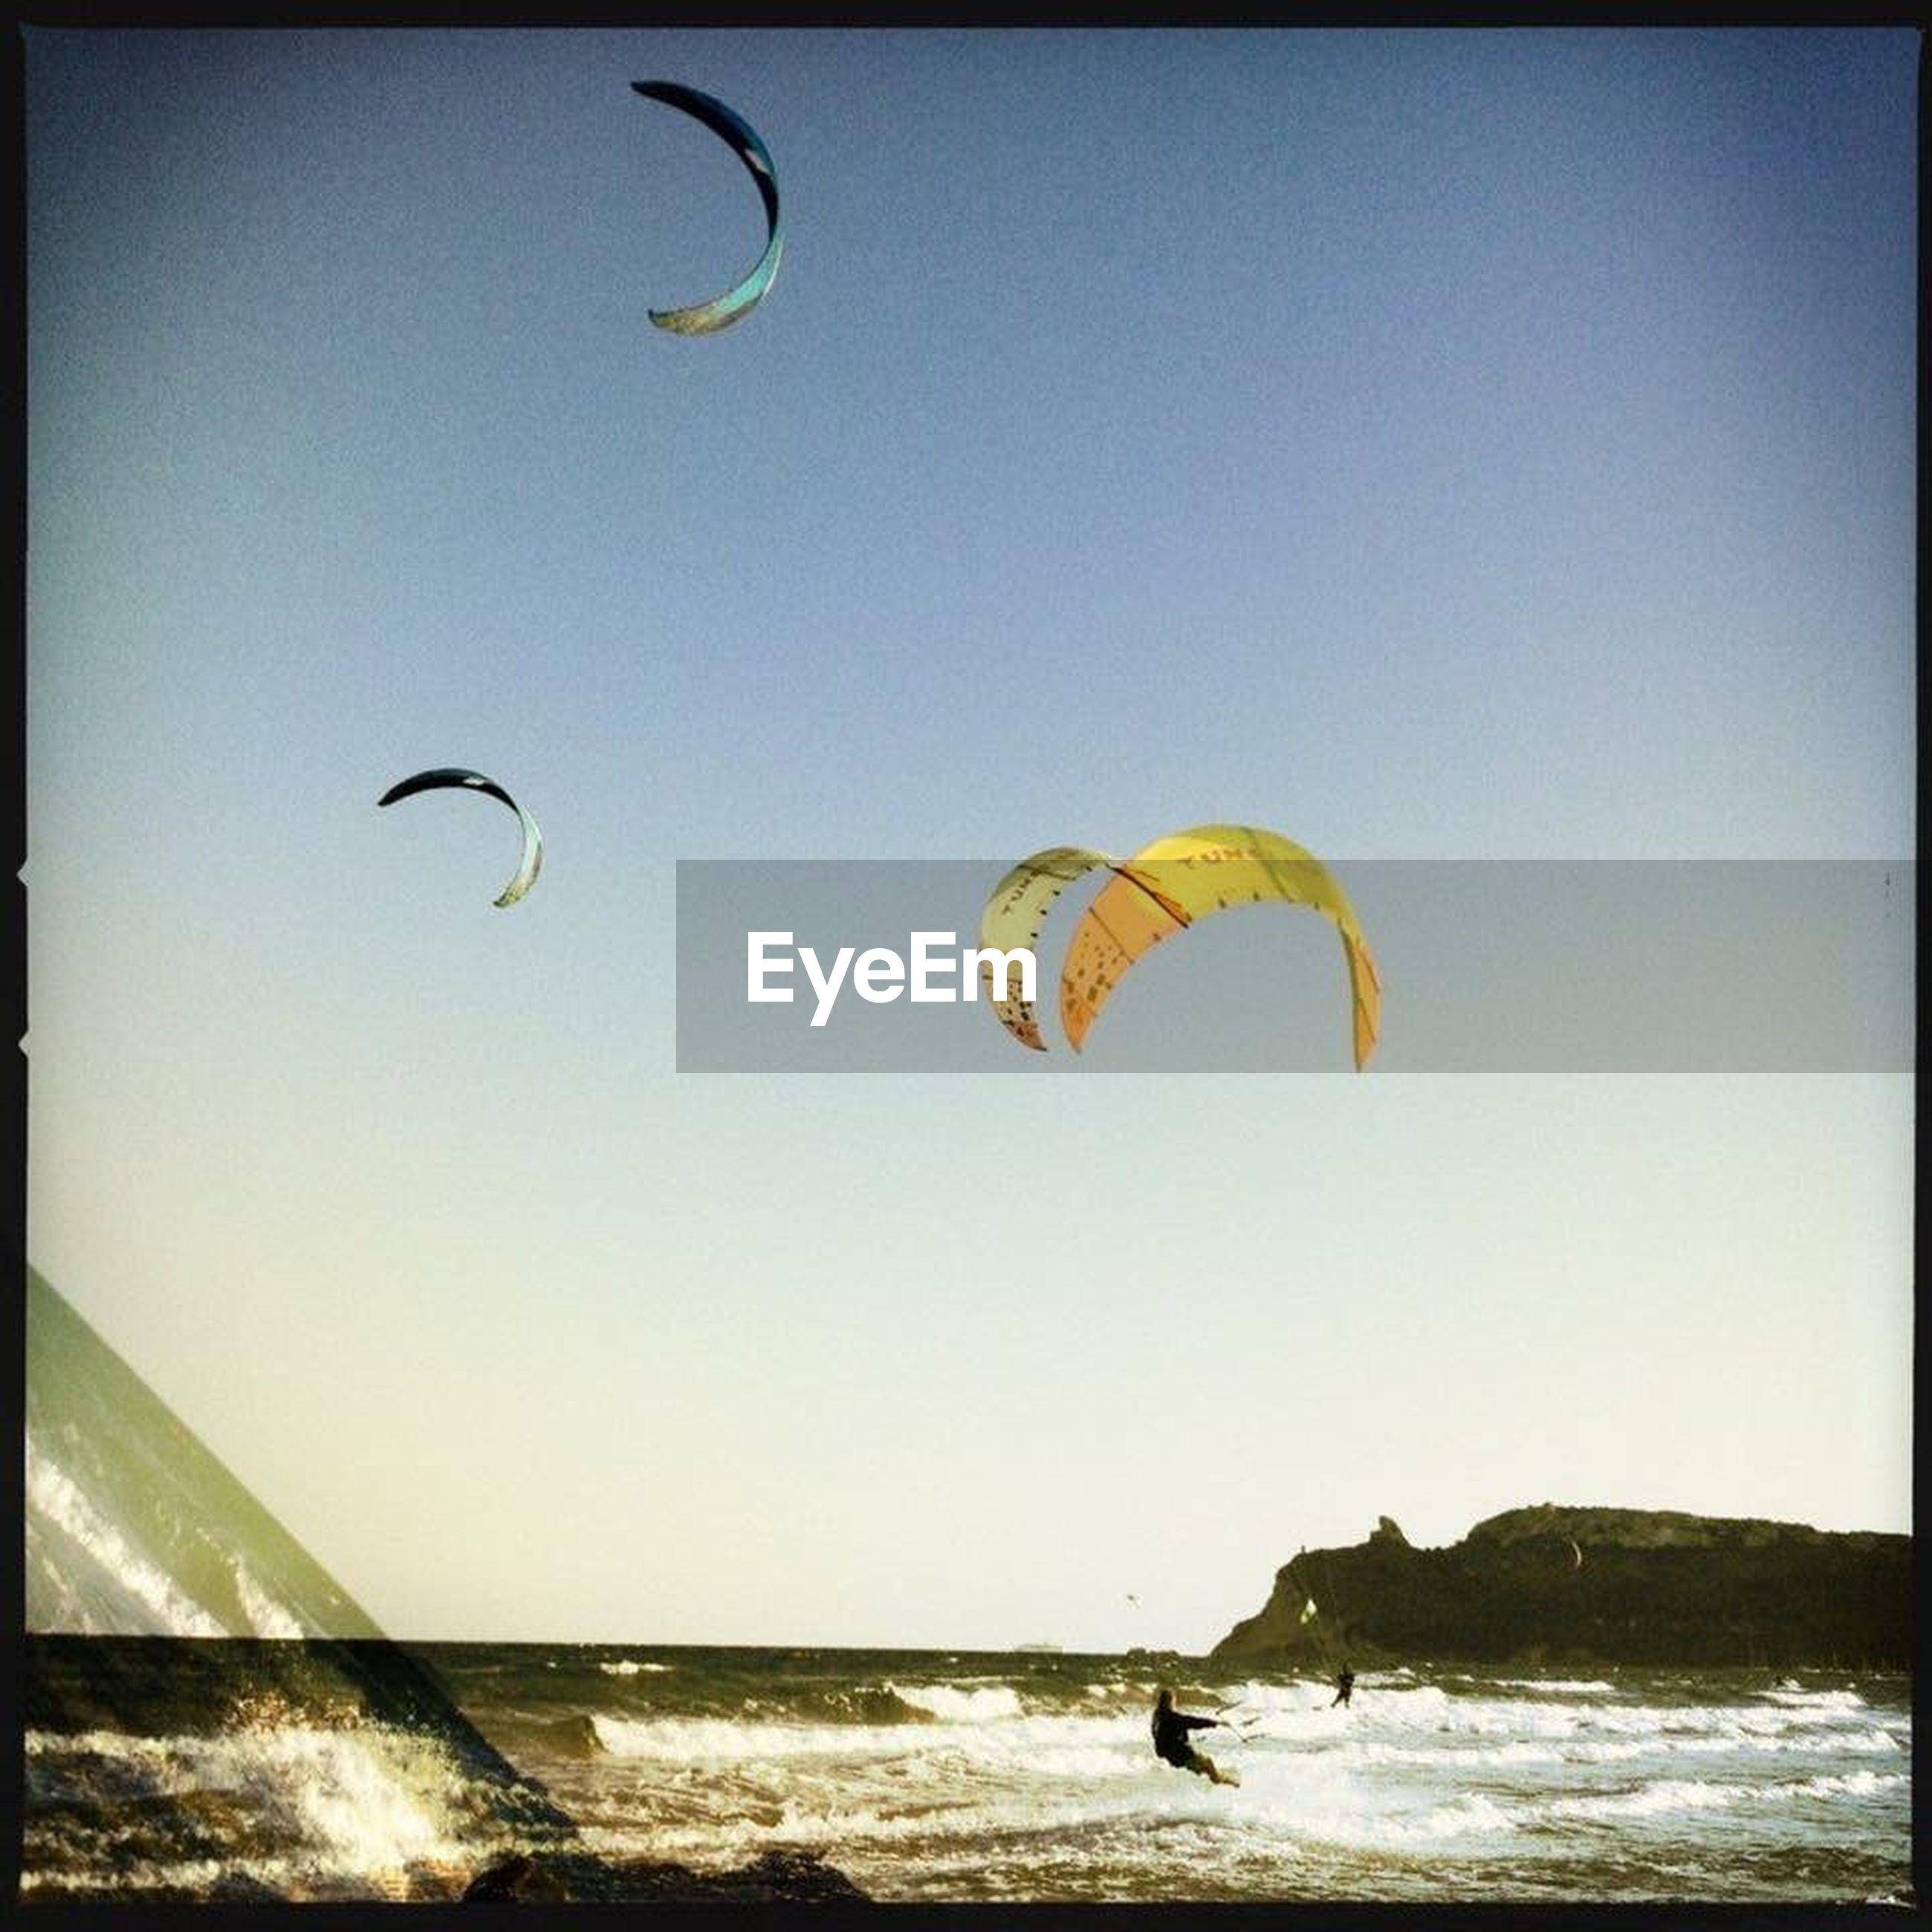 parachute, flying, mid-air, sea, clear sky, extreme sports, leisure activity, beach, paragliding, sport, copy space, adventure, lifestyles, horizon over water, vacations, fun, sand, water